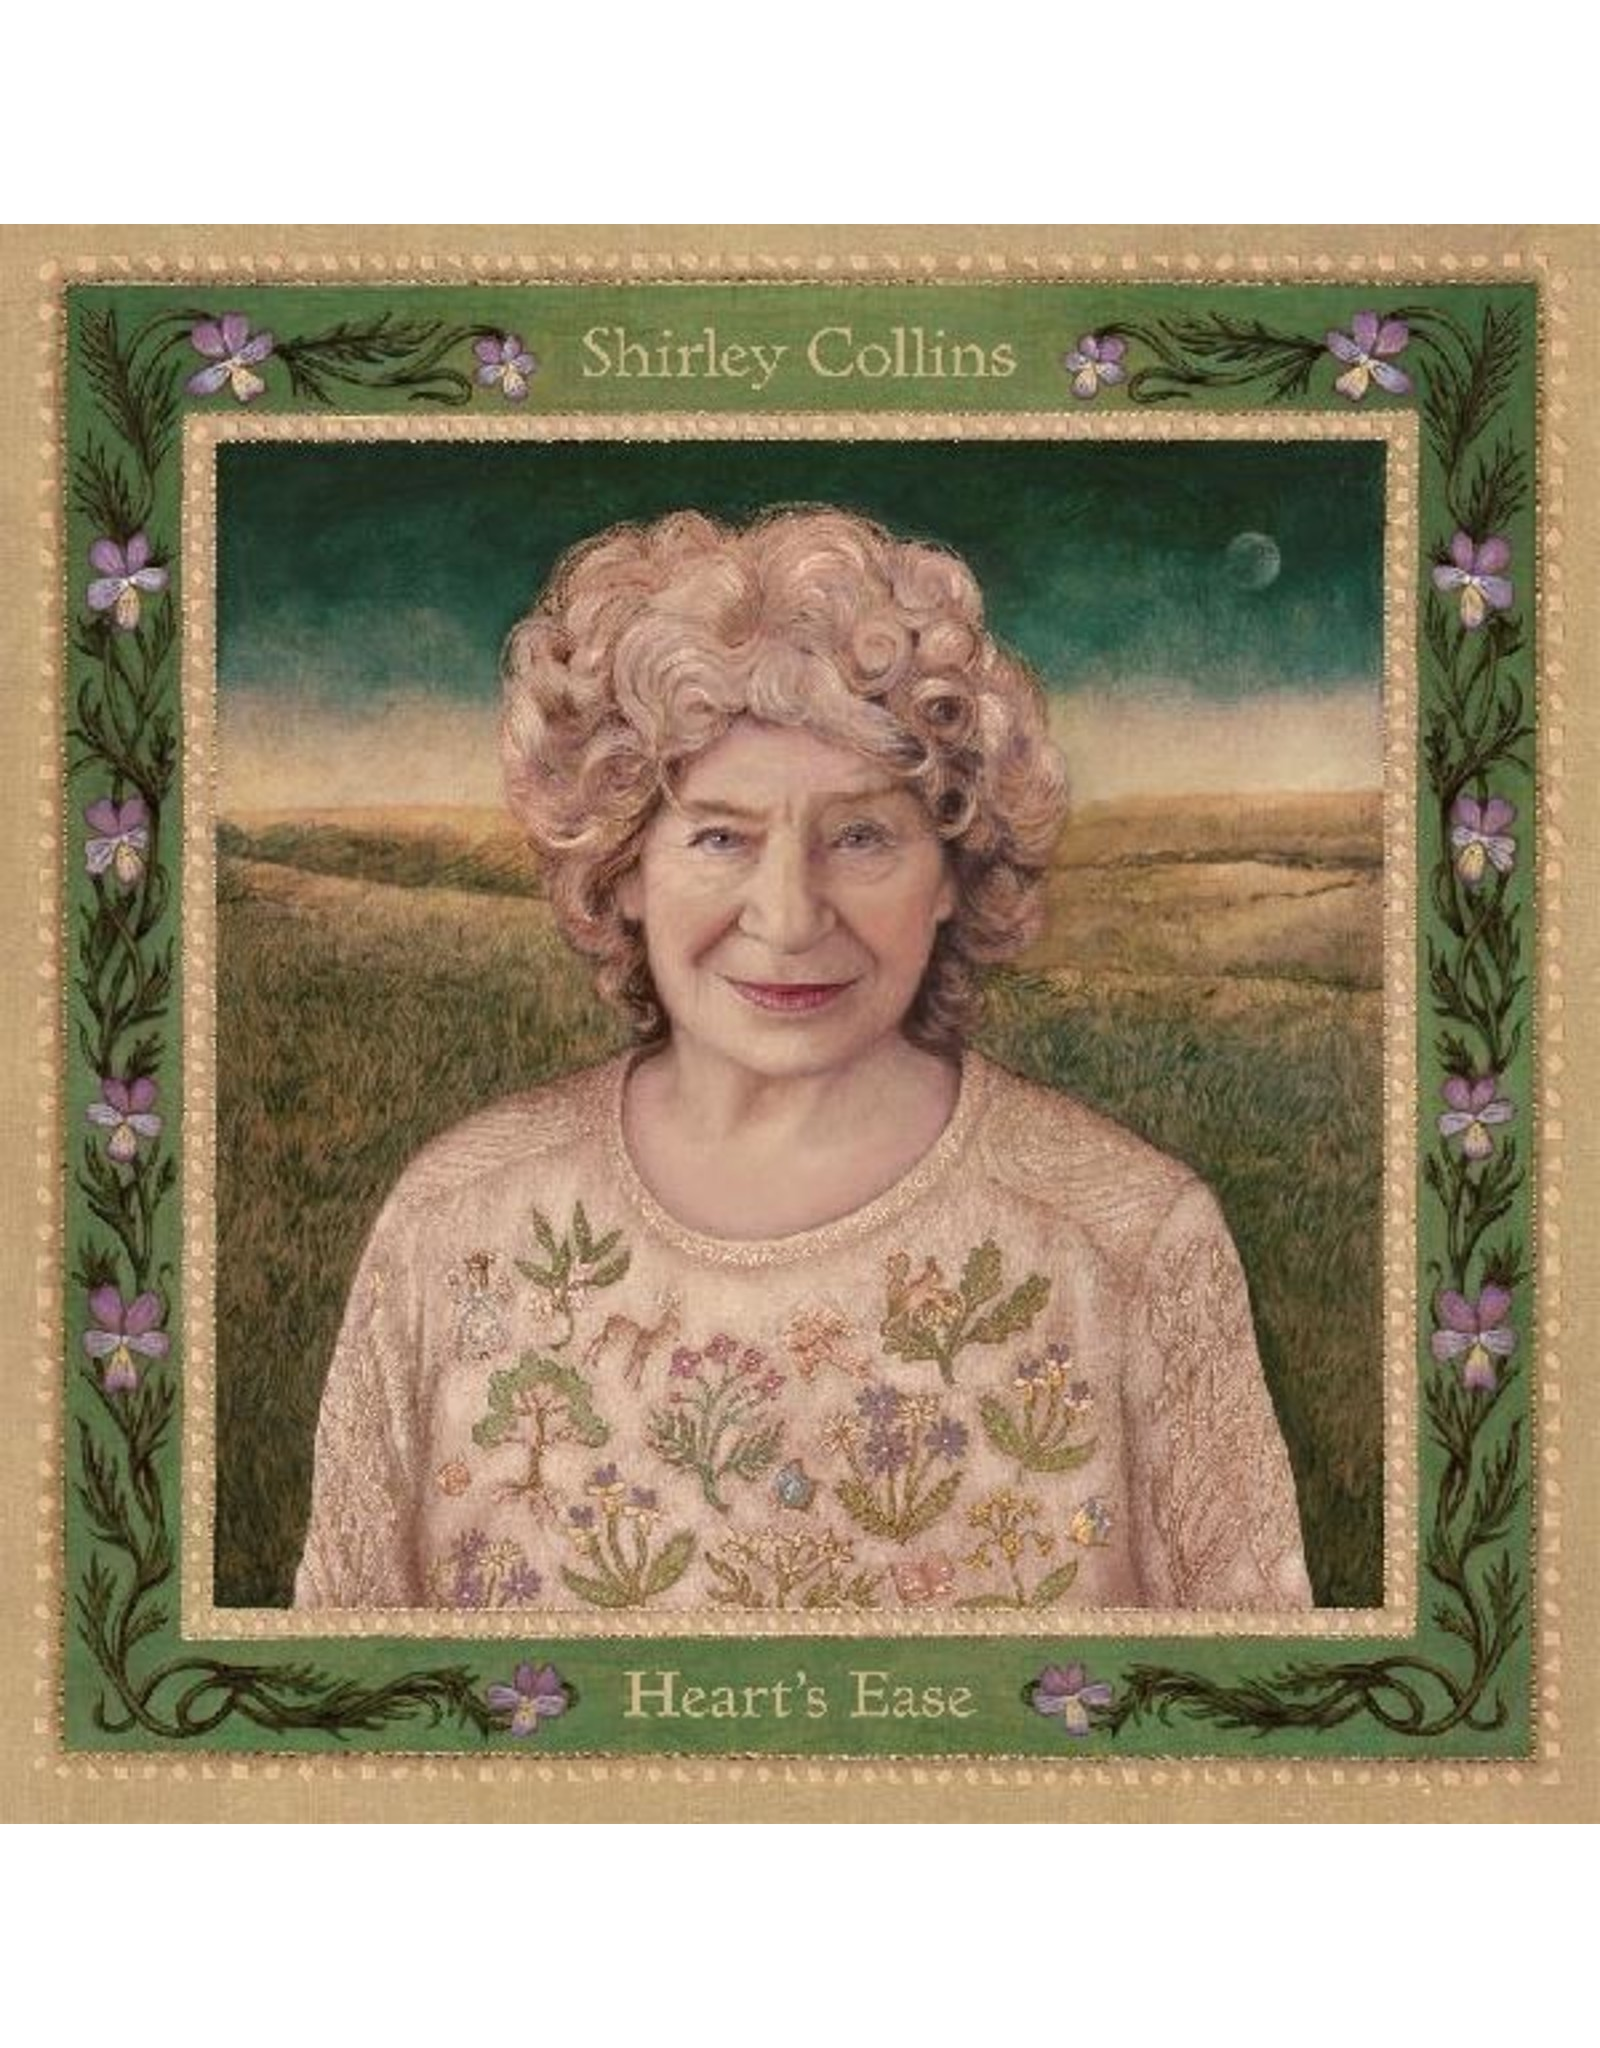 New Vinyl Shirley Collins - Heart's Ease (Deluxe Edition) LP